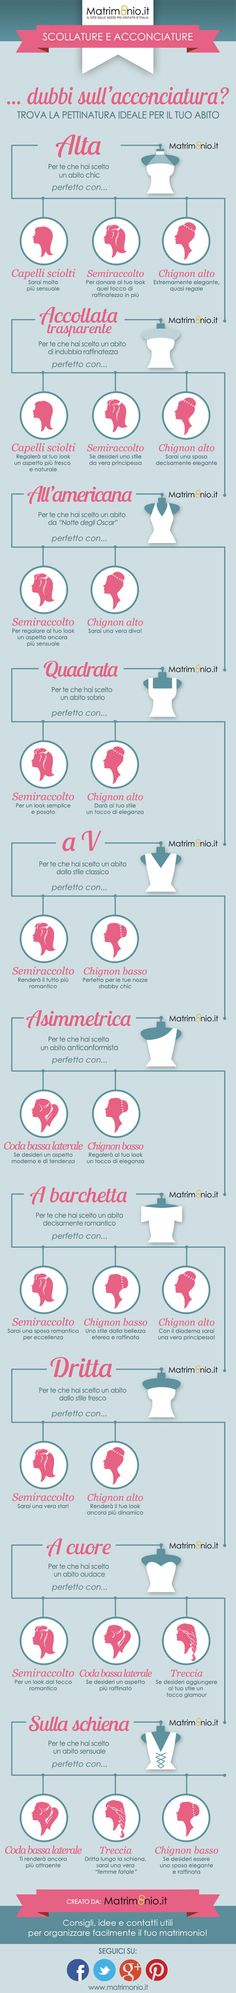 #Infografica: L' #acconciatura della #sposa: come scegliere quella giusta a seconda della #scollatura dell' #abito #updo #wedding #bride #weddingdress #infographic #nozze #bride. http://www.matrimonio.it/guida/la-sposa-e-lo-sposo/acconciature-e-bellezza/infografica--scollature-e-acconciature